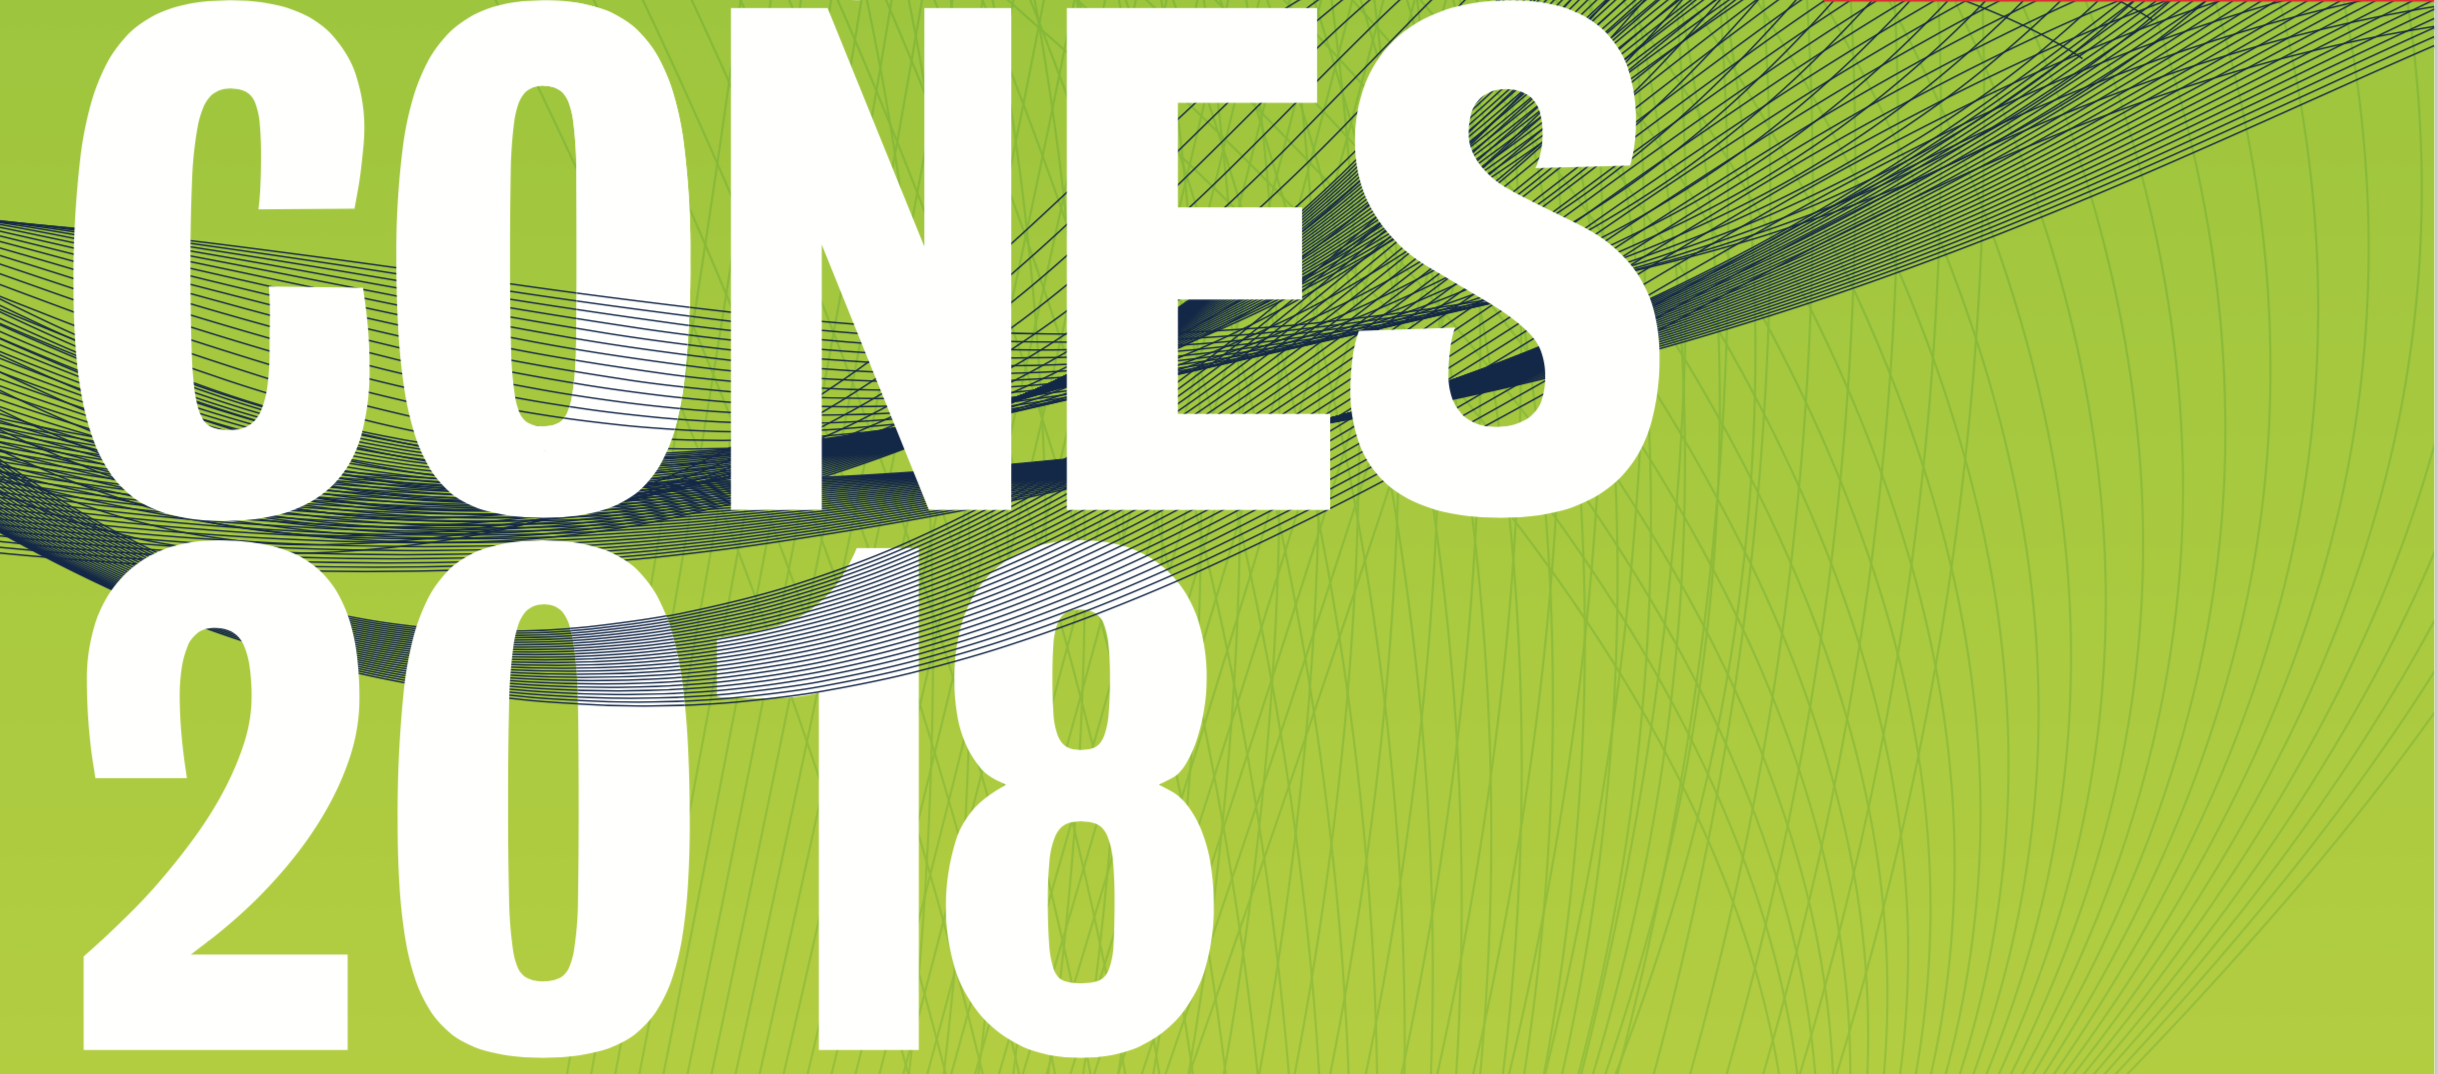 CONES 2018: Conference on Non-Equilibrium Systems